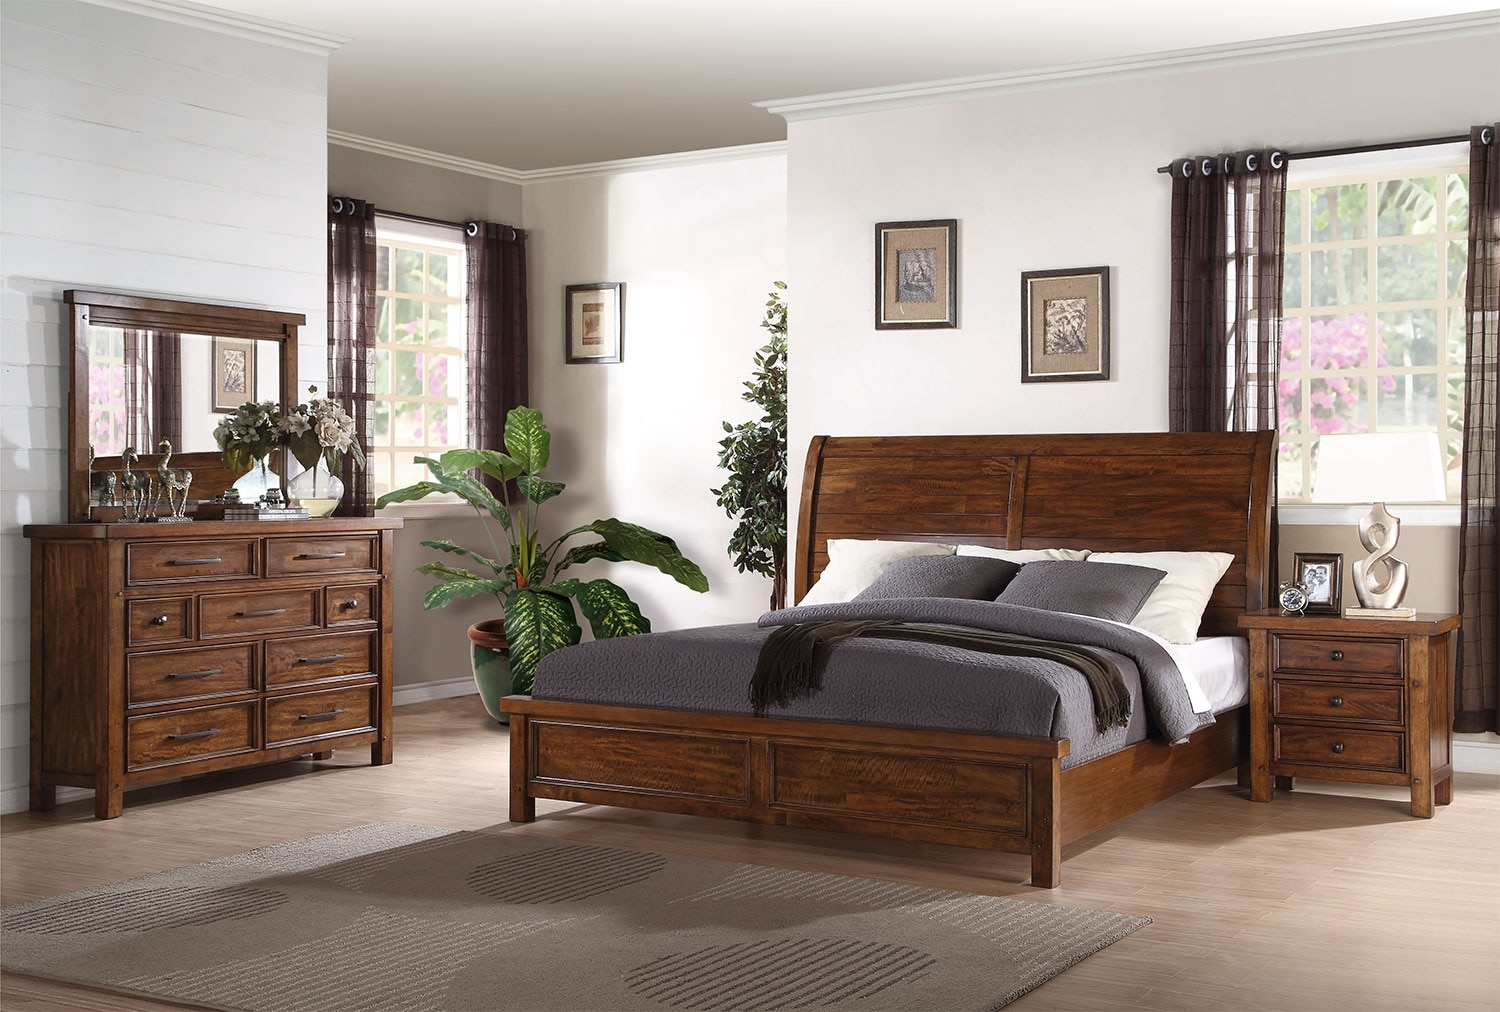 Bedroom Furniture - Sonoma 6-Piece Queen Bedroom Package – Medium Brown